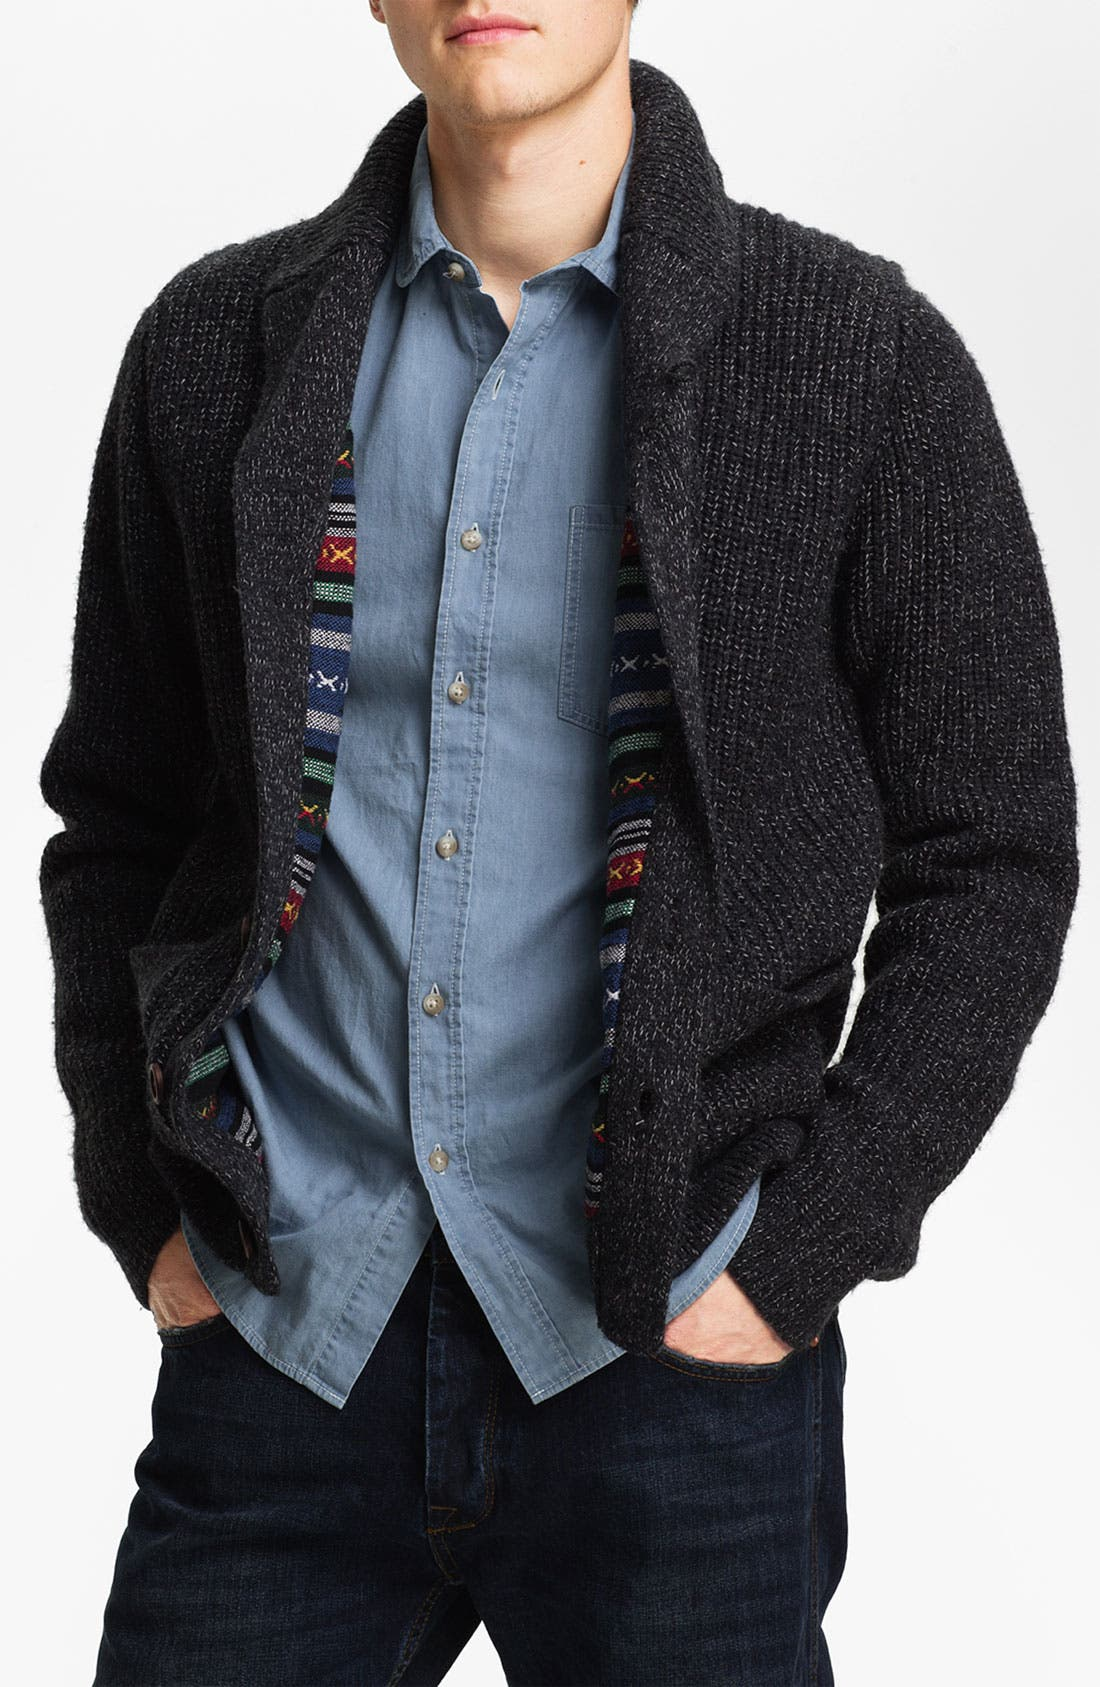 Alternate Image 1 Selected - Topman Lined Shawl Collar Sweater